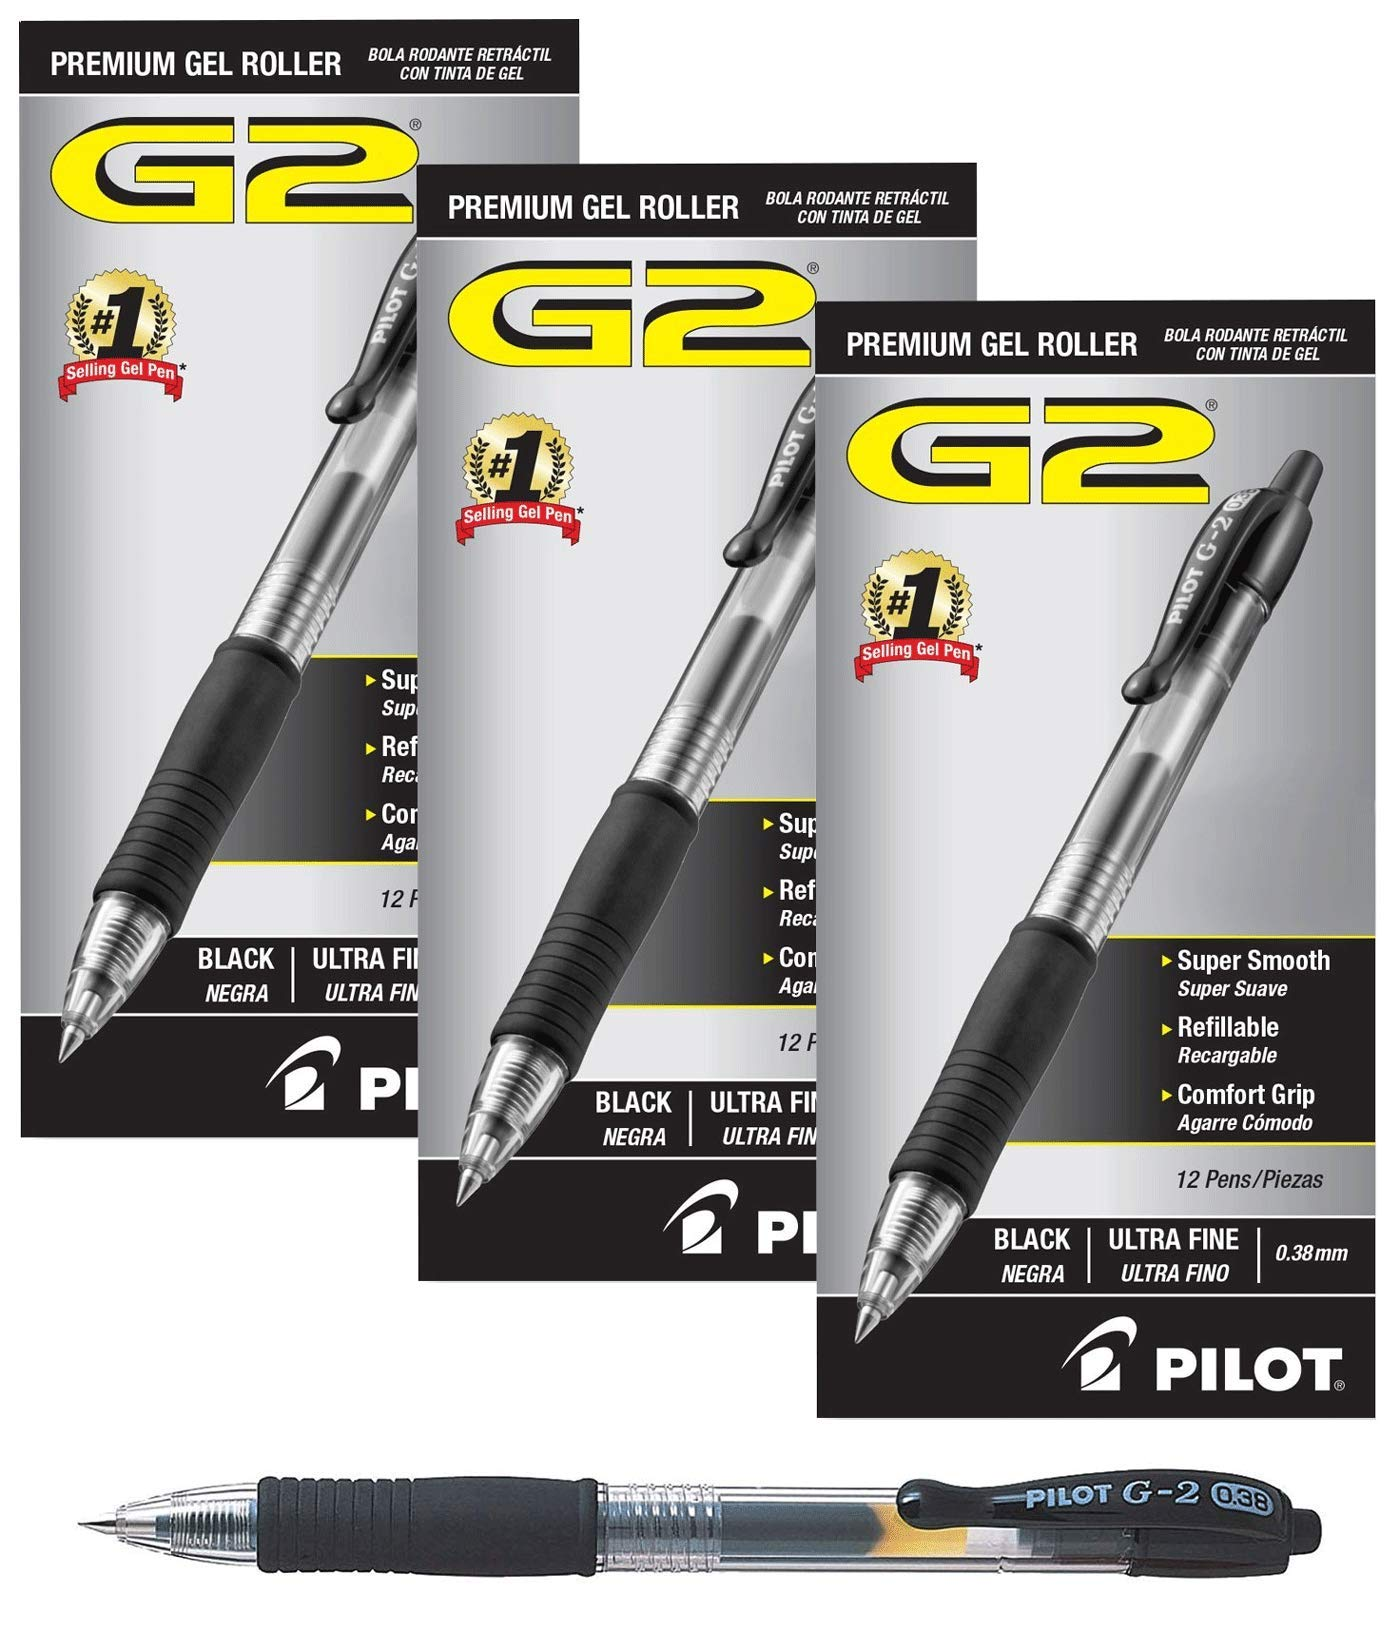 Pilot G2 Retractable Premium Gel Ink Roller Ball Pens Ultra Fine 3 Dozen Black ; Retractable, Refillable & Premium Comfort Grip; Smooth Lines to the End of the Page, America's #1 Selling Pen Brand by Pilot